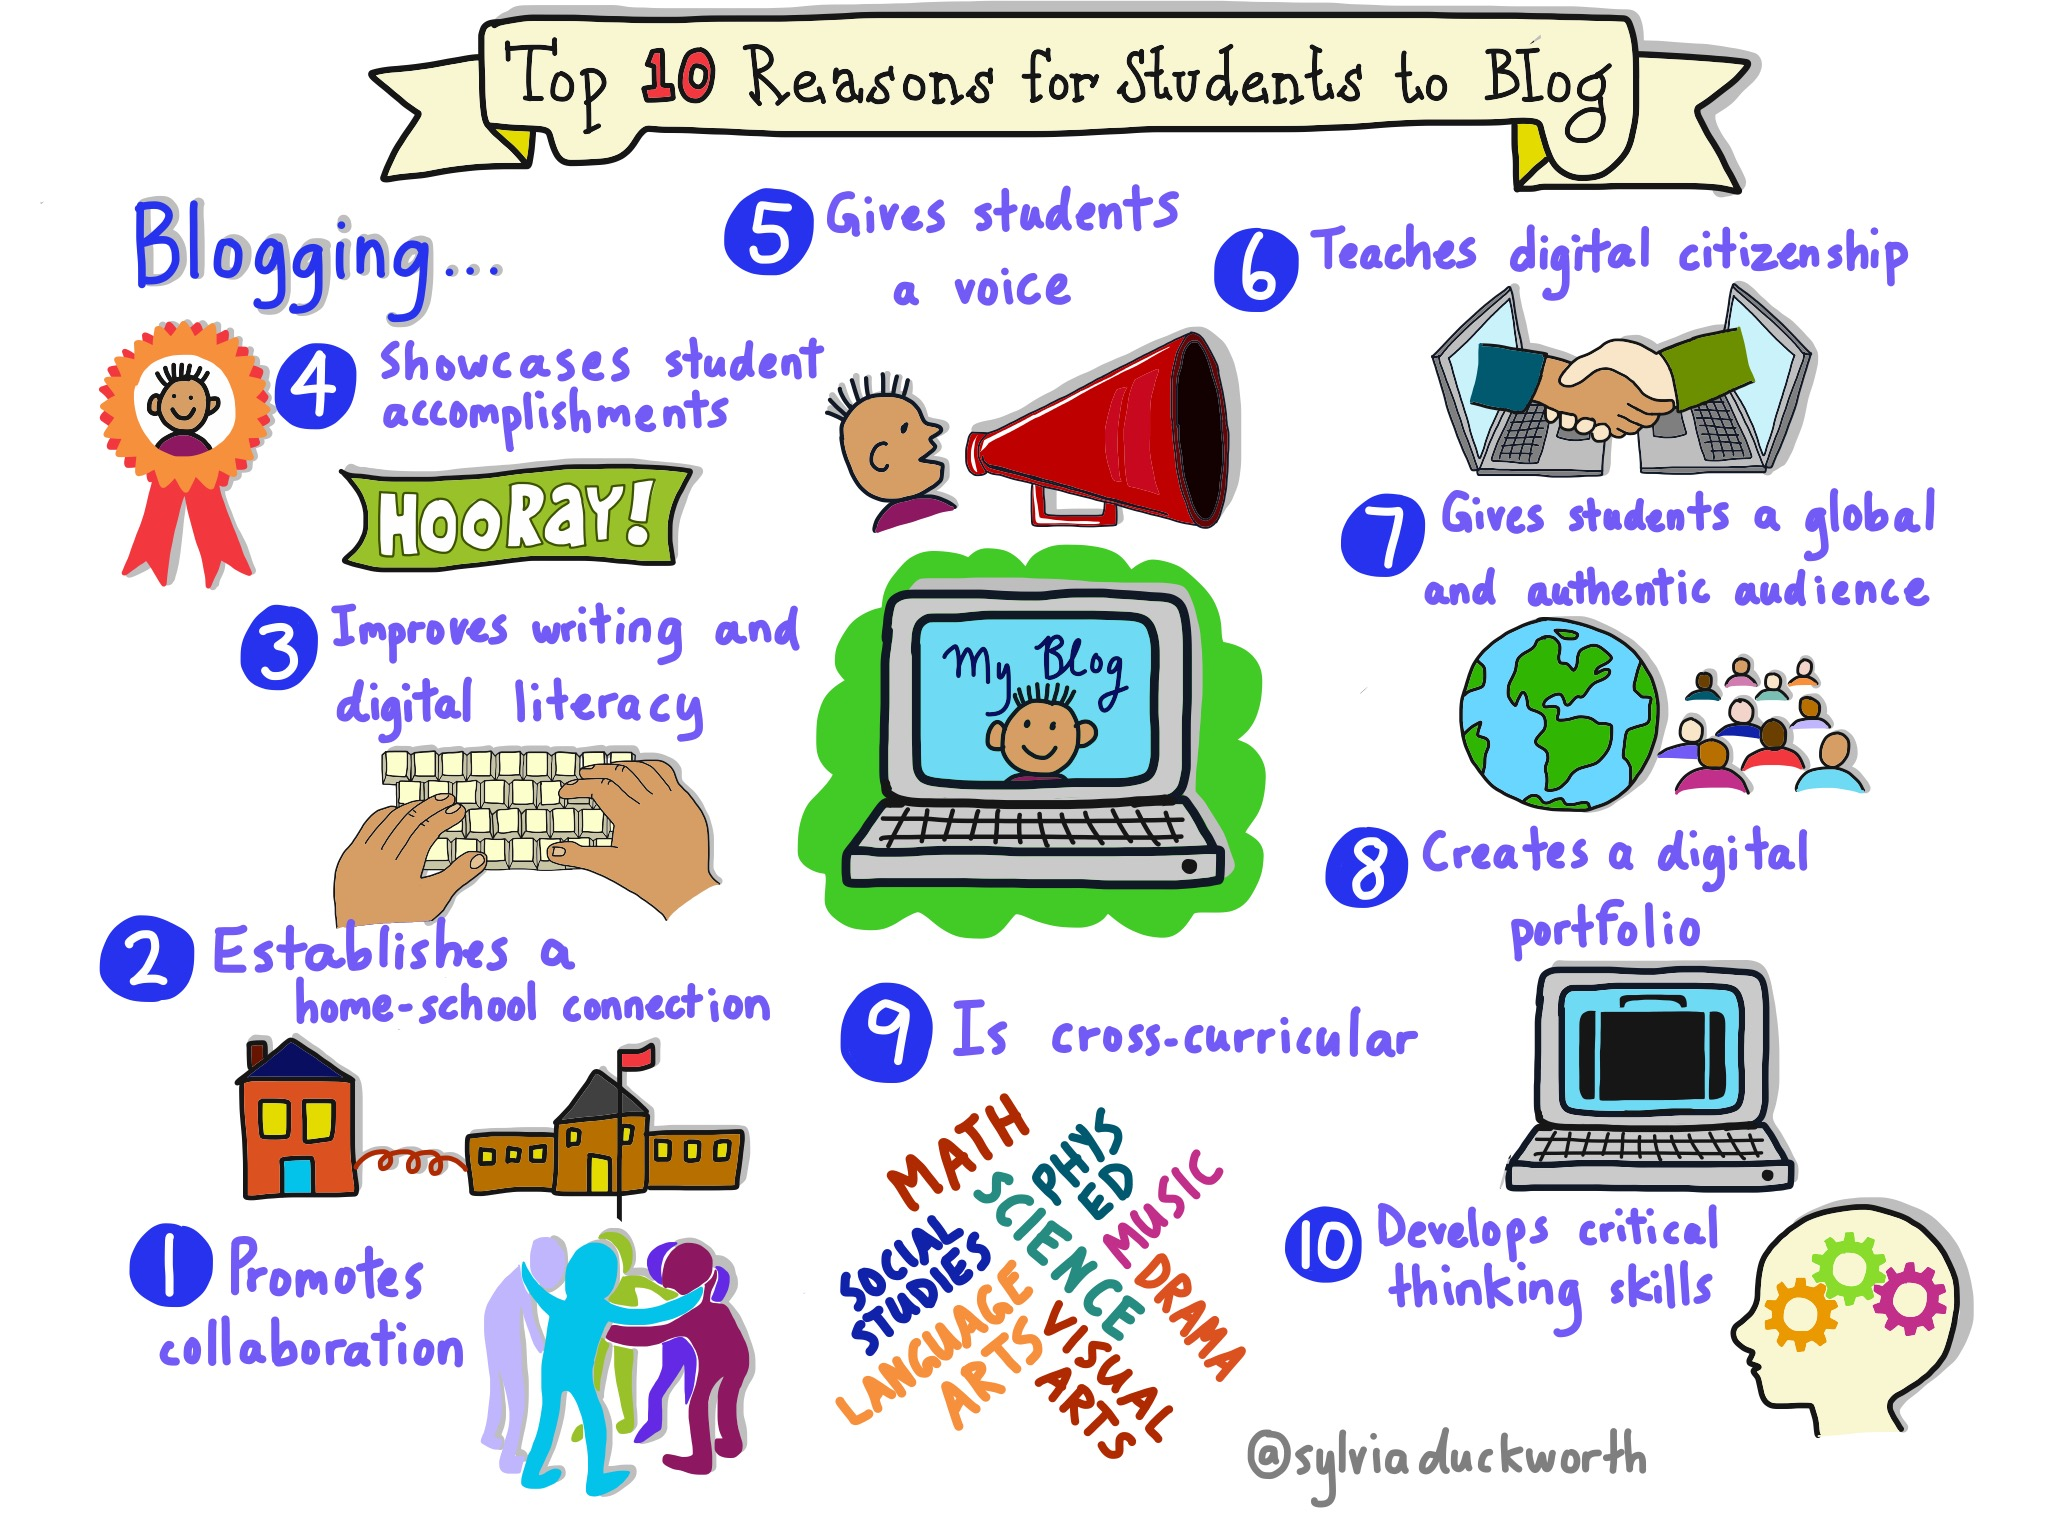 Top 10 Reasons for Students to Blog